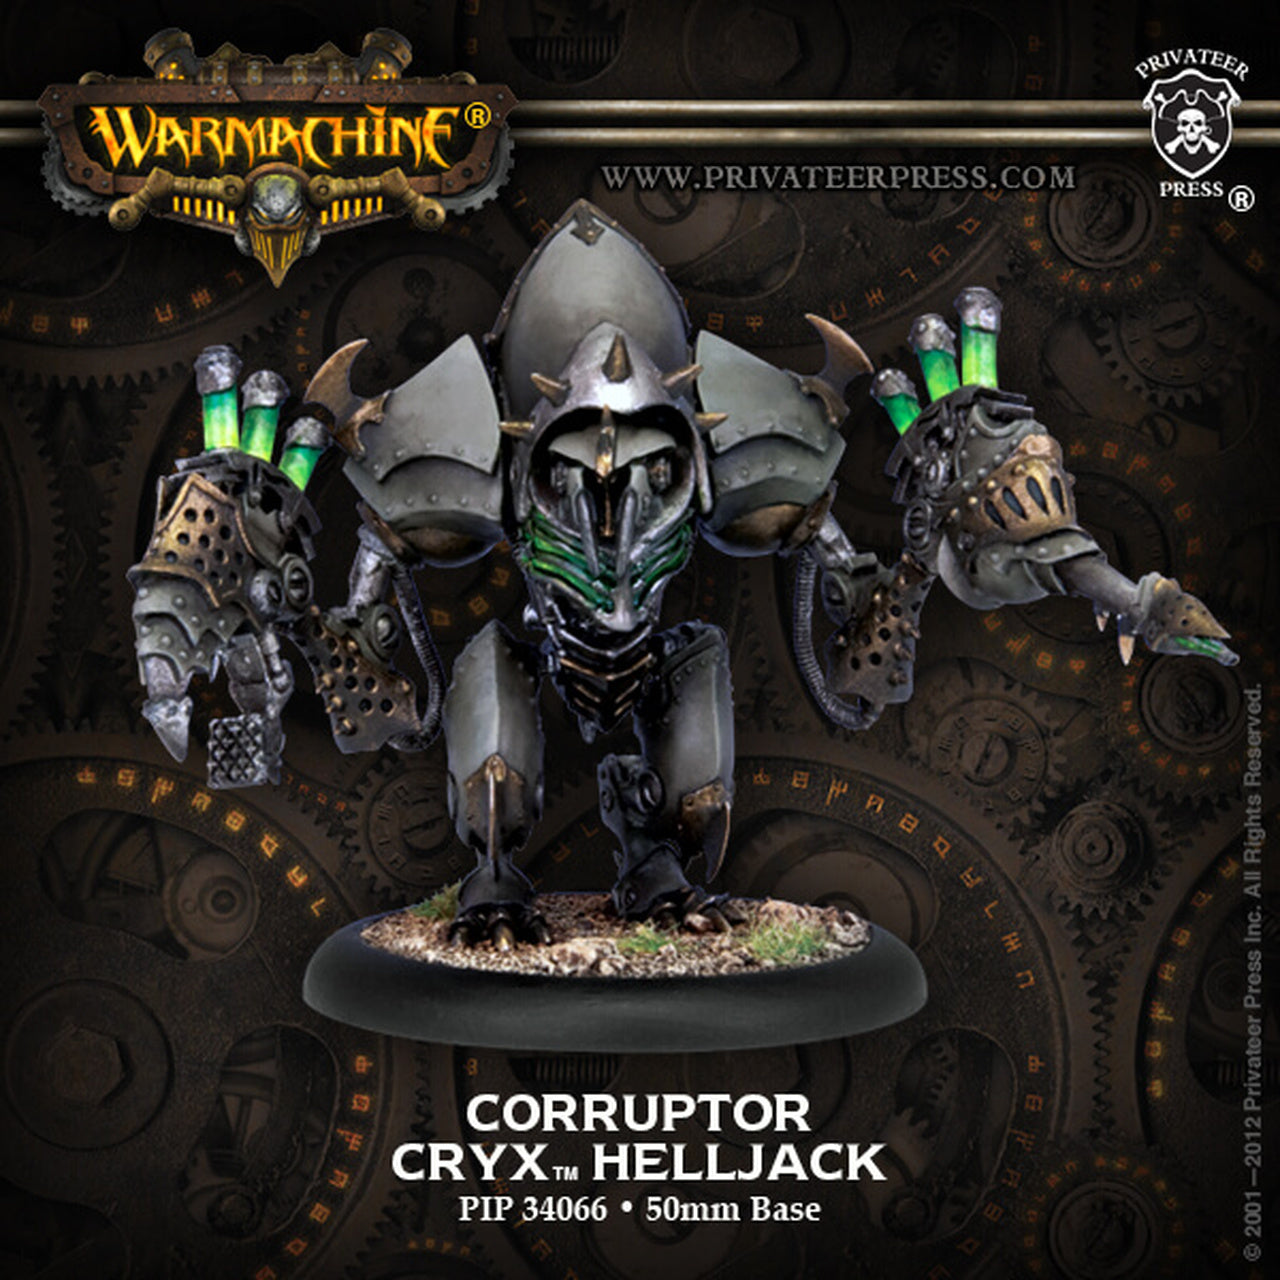 Cryx - Corruptor/Reaper/Slayer Helljack | All About Games